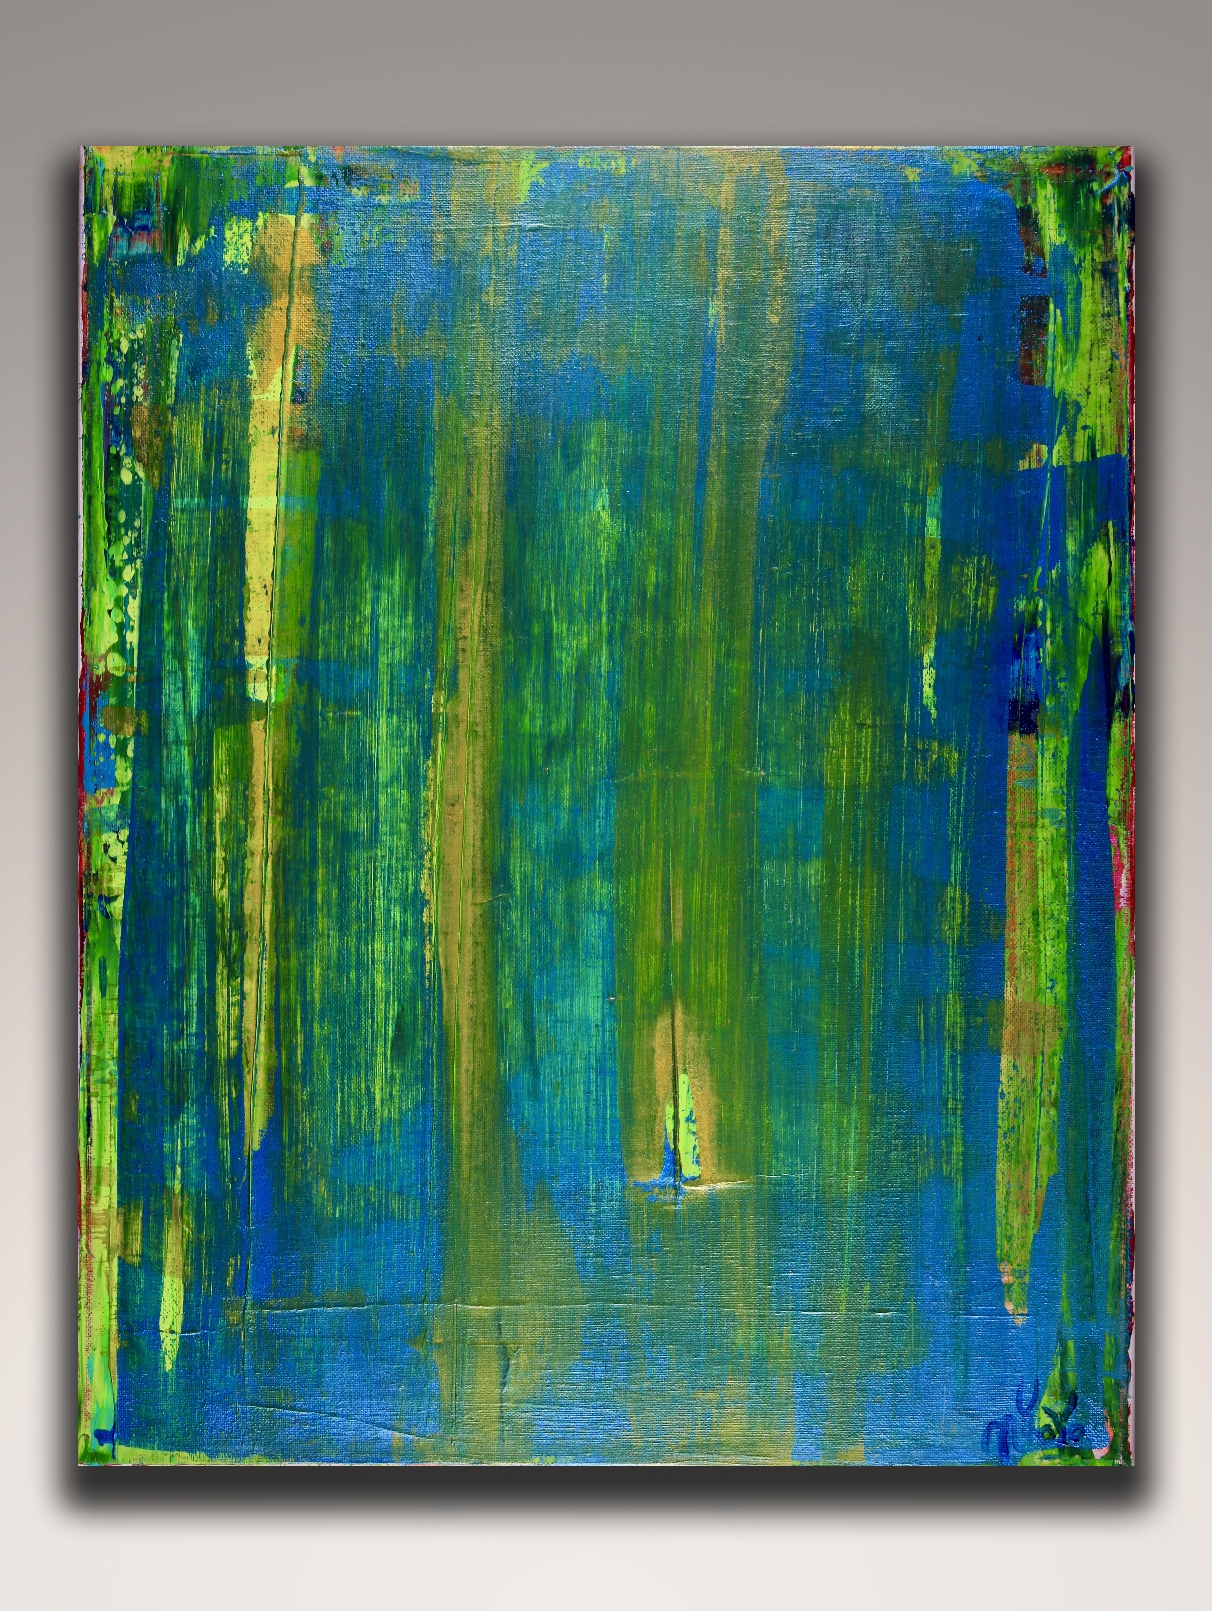 Unknown Distant Object - ABSTRACT ART - NESTOR TORO - LOS